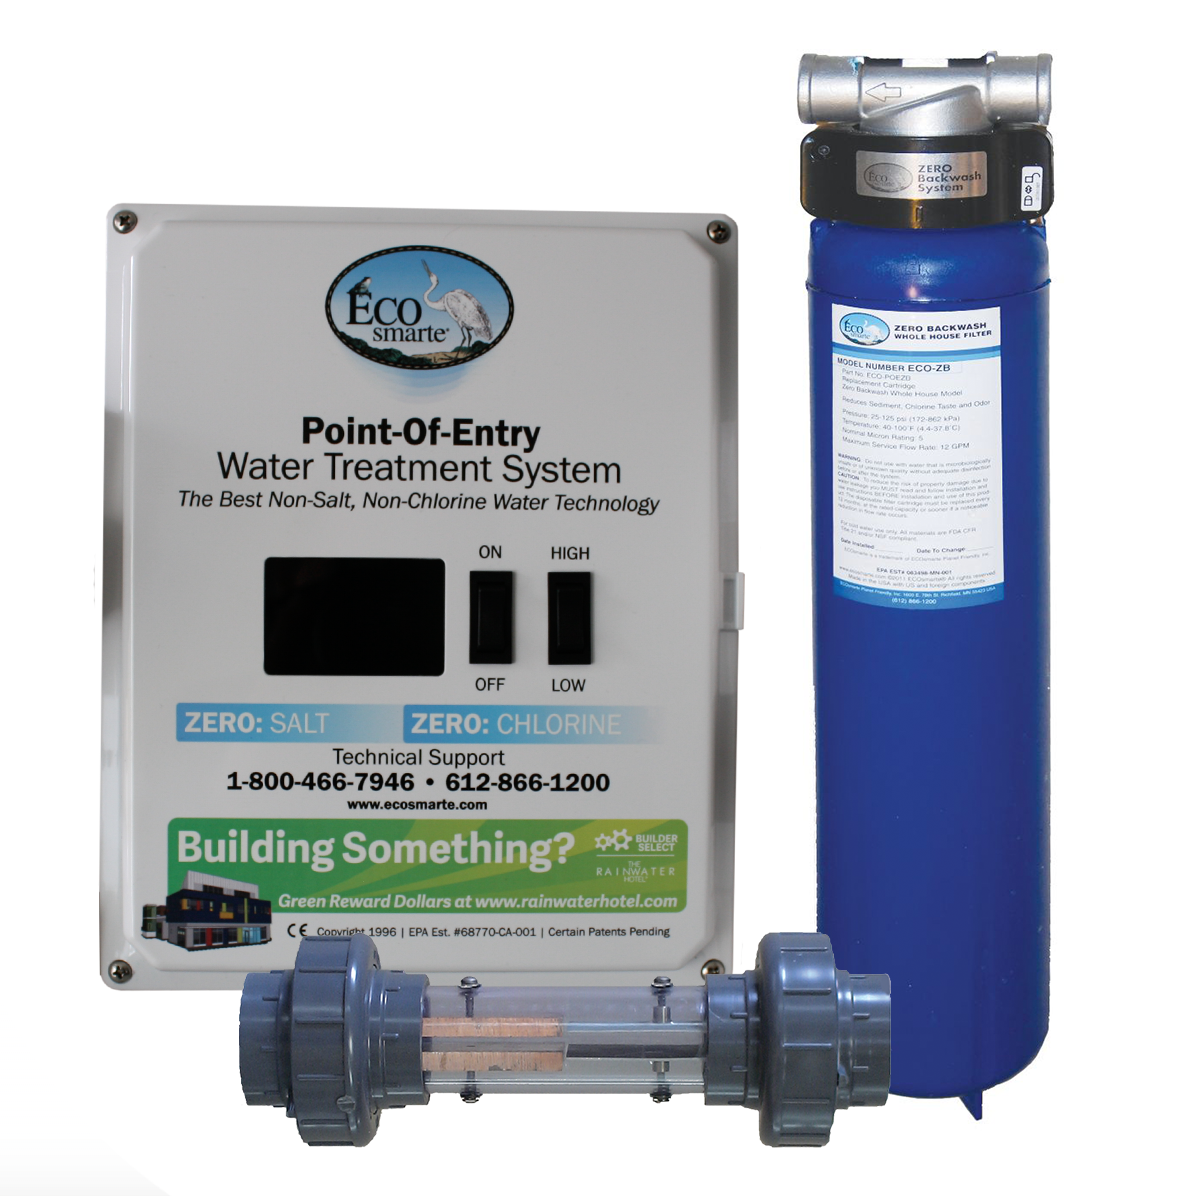 ECOsmarte Point Of Entry bundle including the control panel, a tank, and a chamber